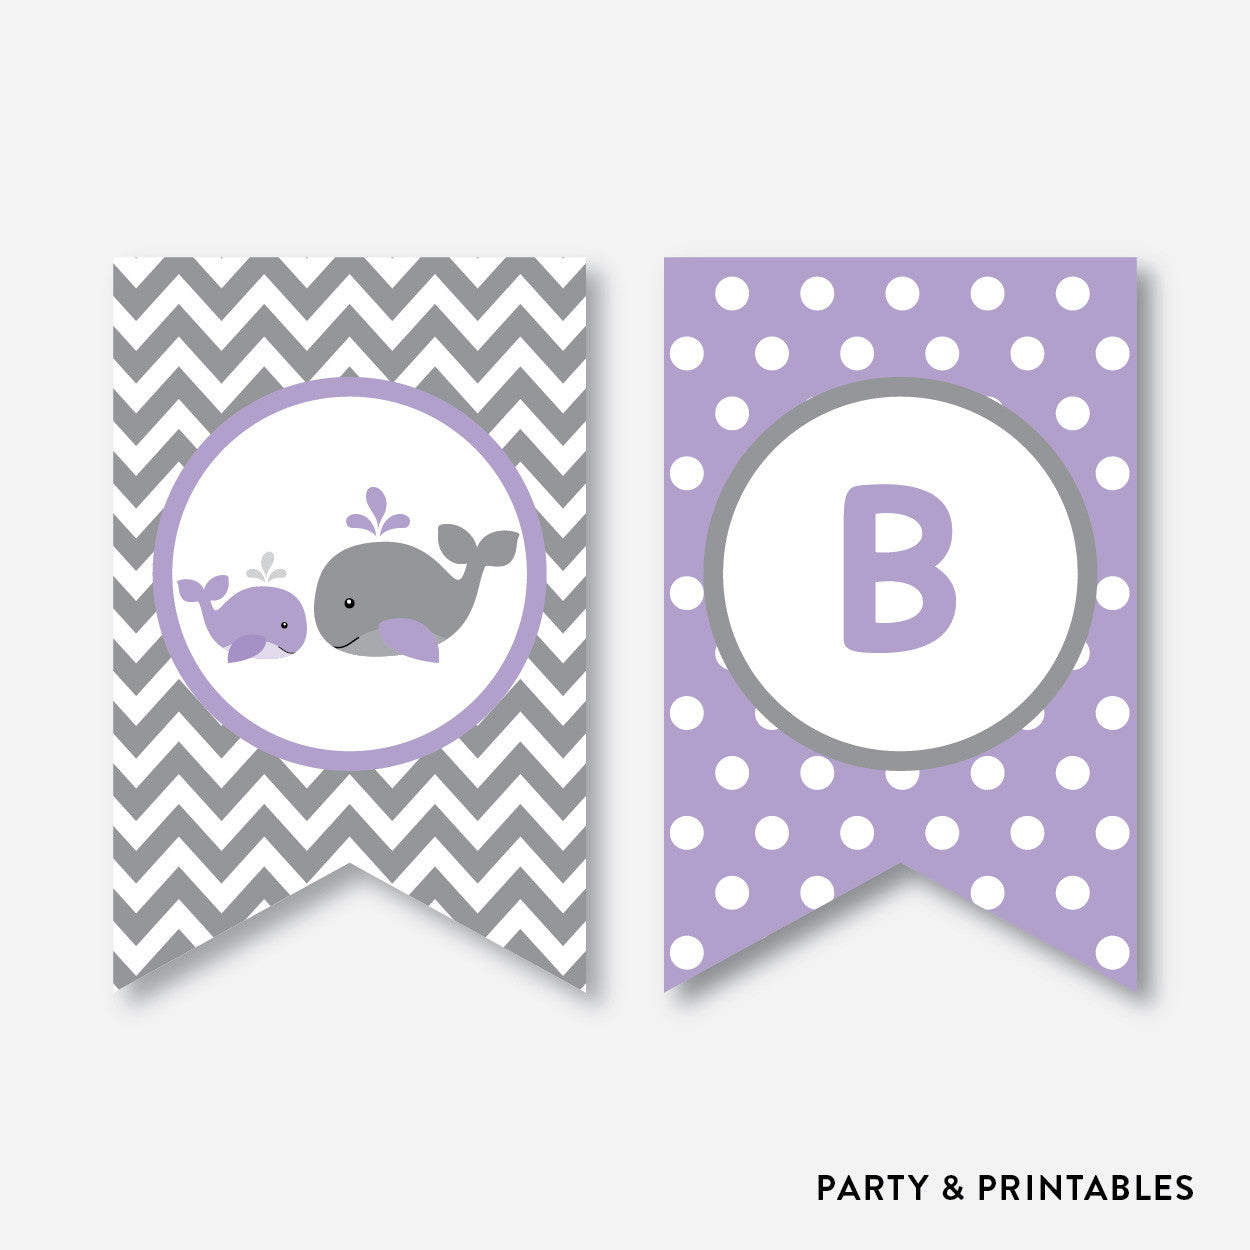 Whale Party Banner / Baby Shower Banner / Non-Personalized / Instant Download (SBS.54), party printables - Party and Printables